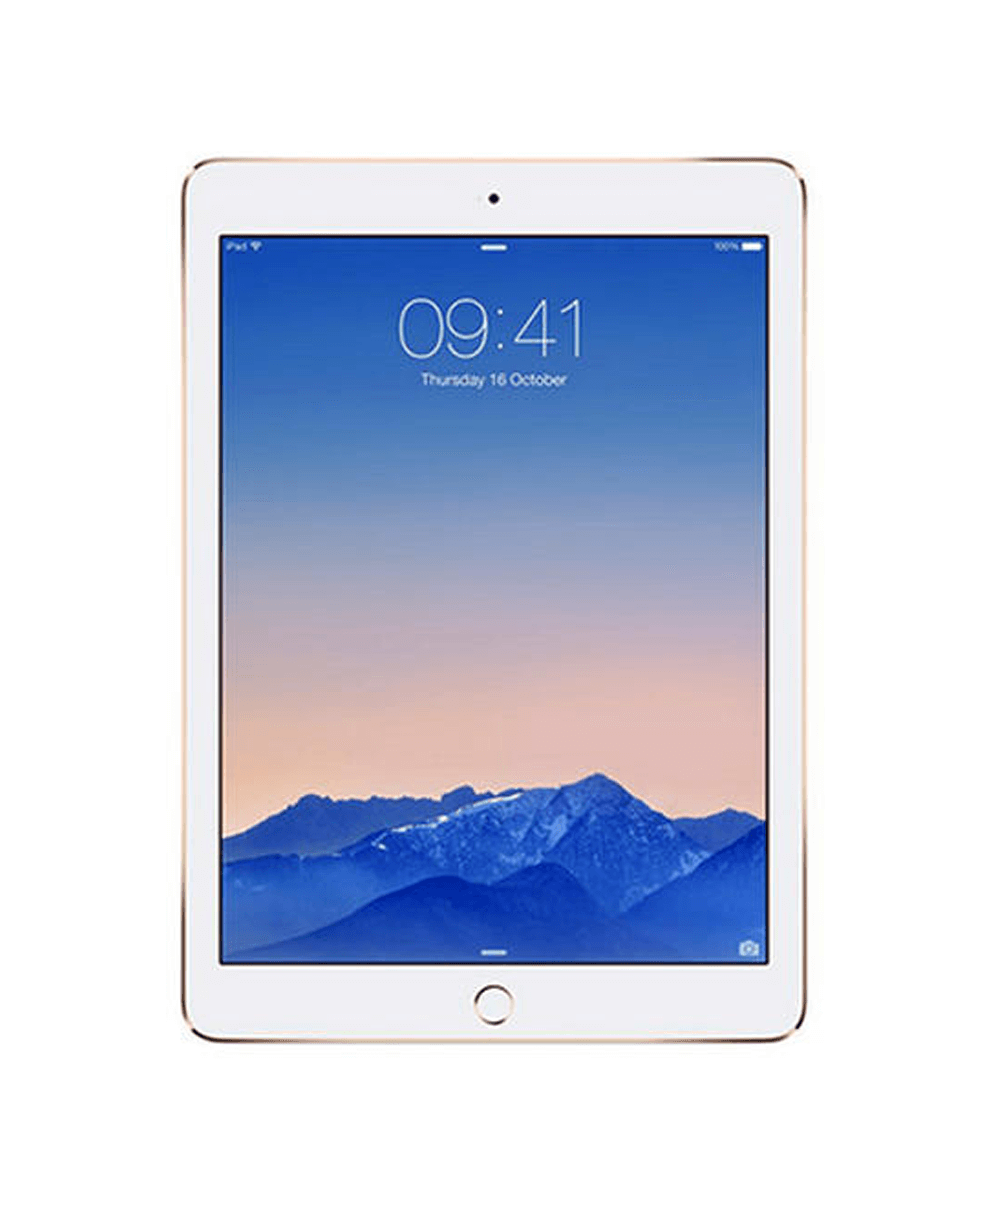 Apple iPad air 2 Screen Full Unit (LCD and glass)